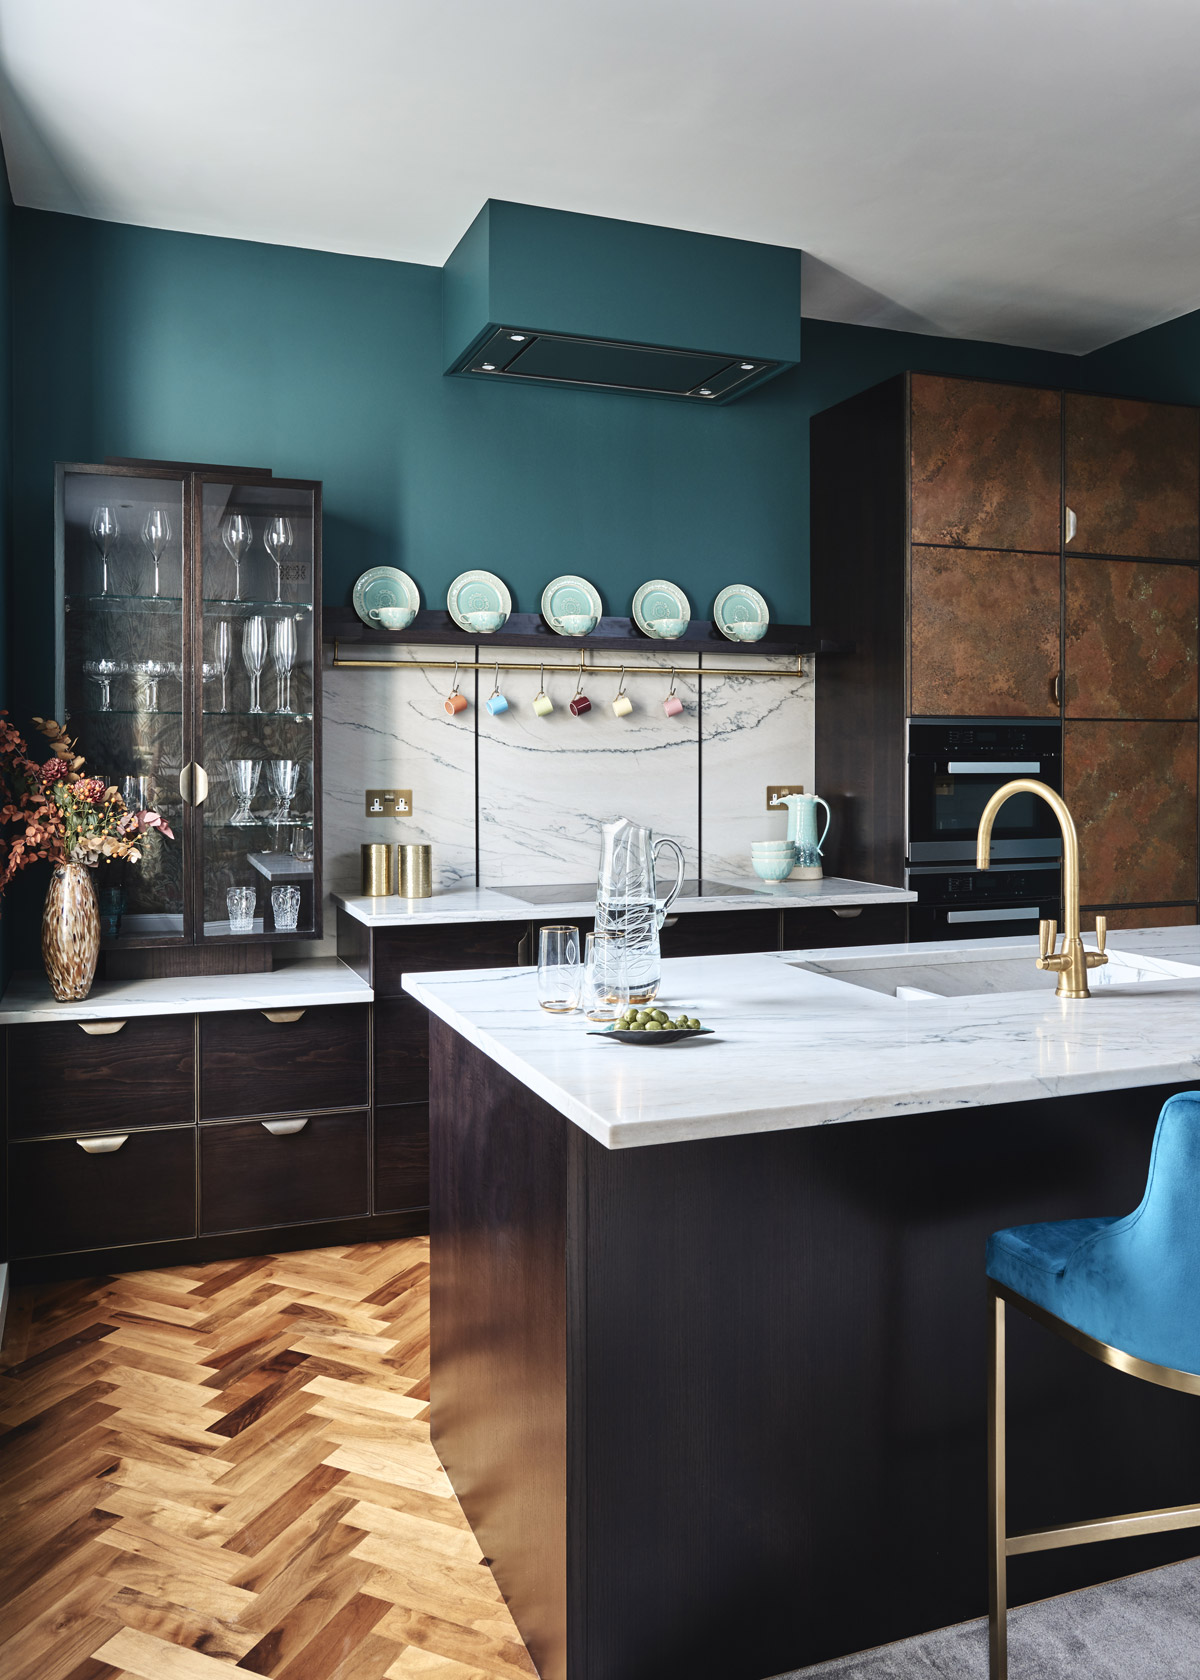 Parquet flooring defines the kitchen area in the open-plan living room.